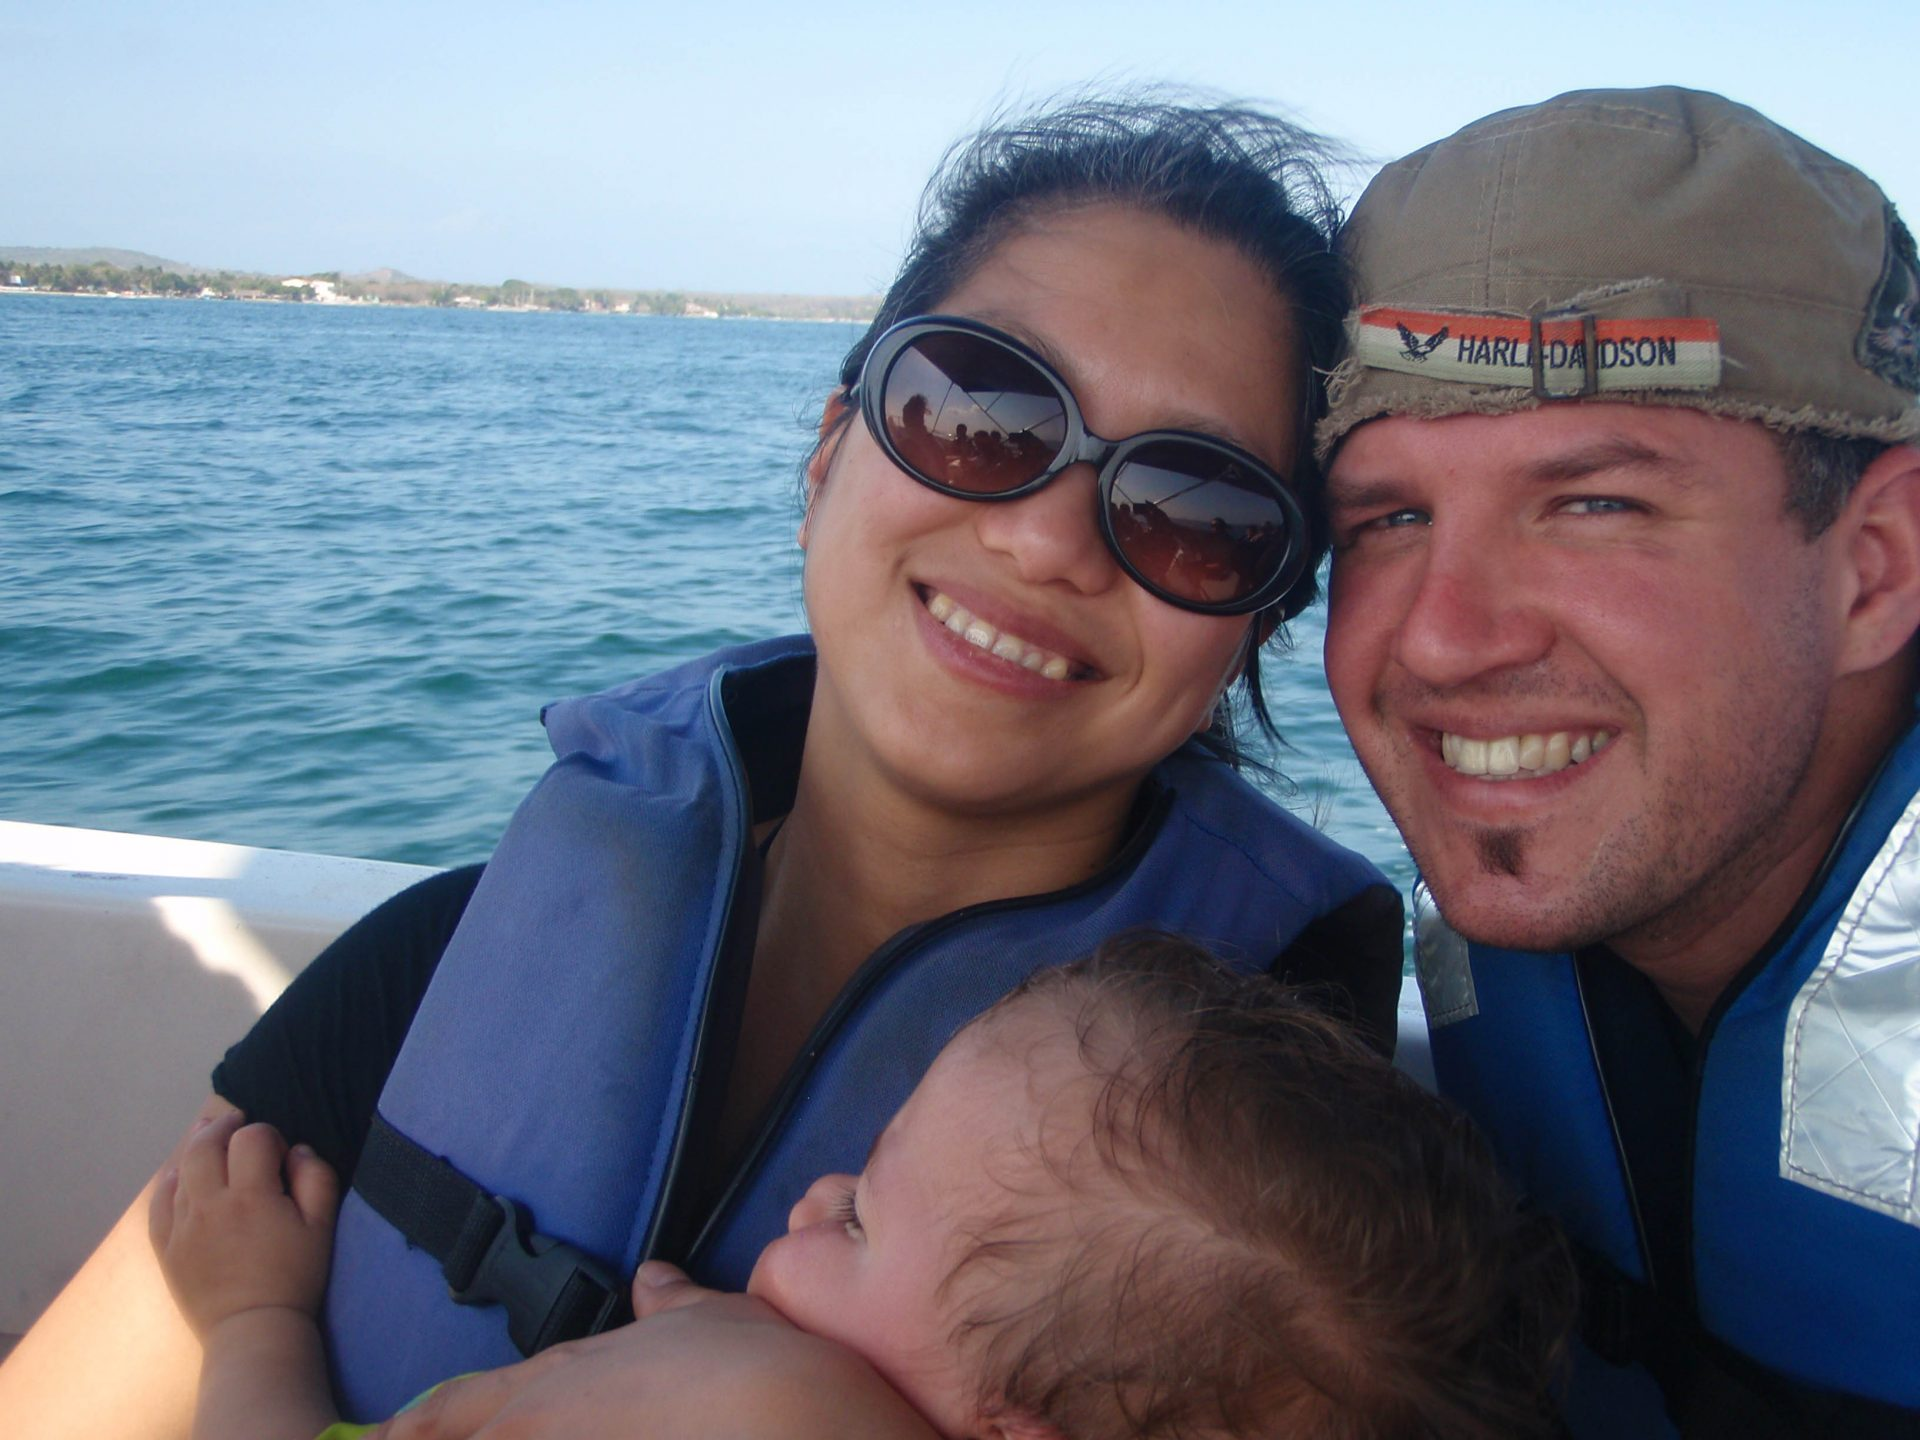 Mom holding her son with father beside her while on a boat to Pirate Island.